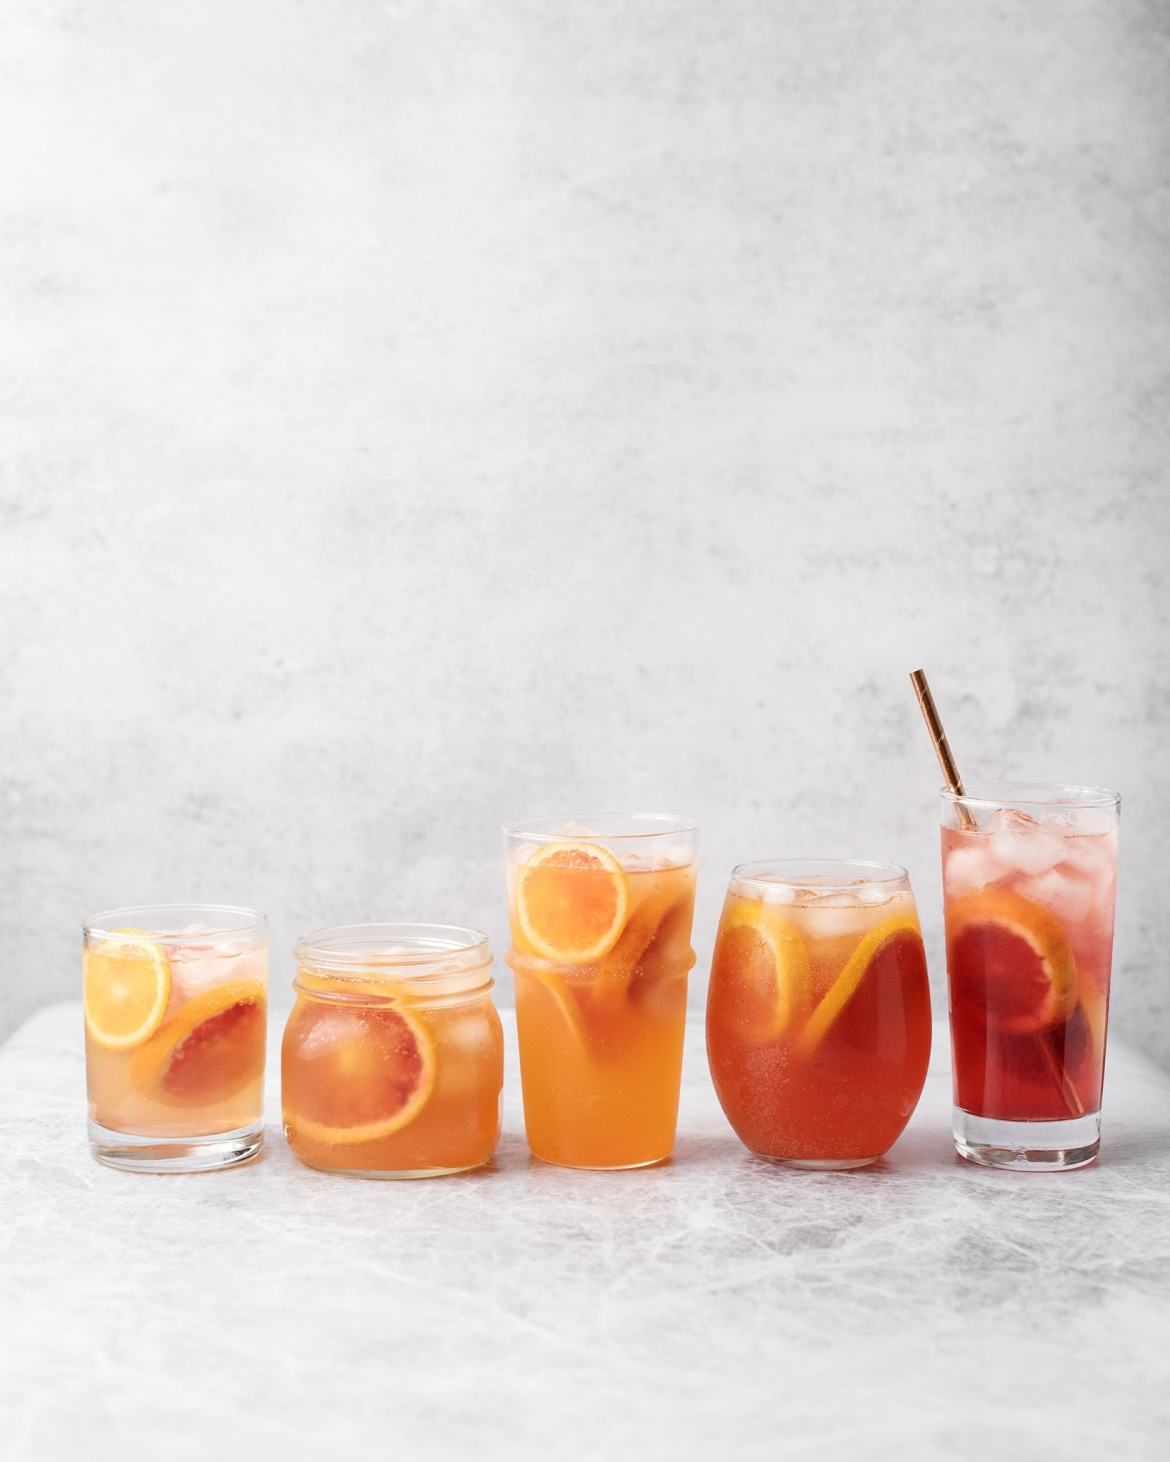 Glasses of blood orange palomas lined up as a gradient on a grey background